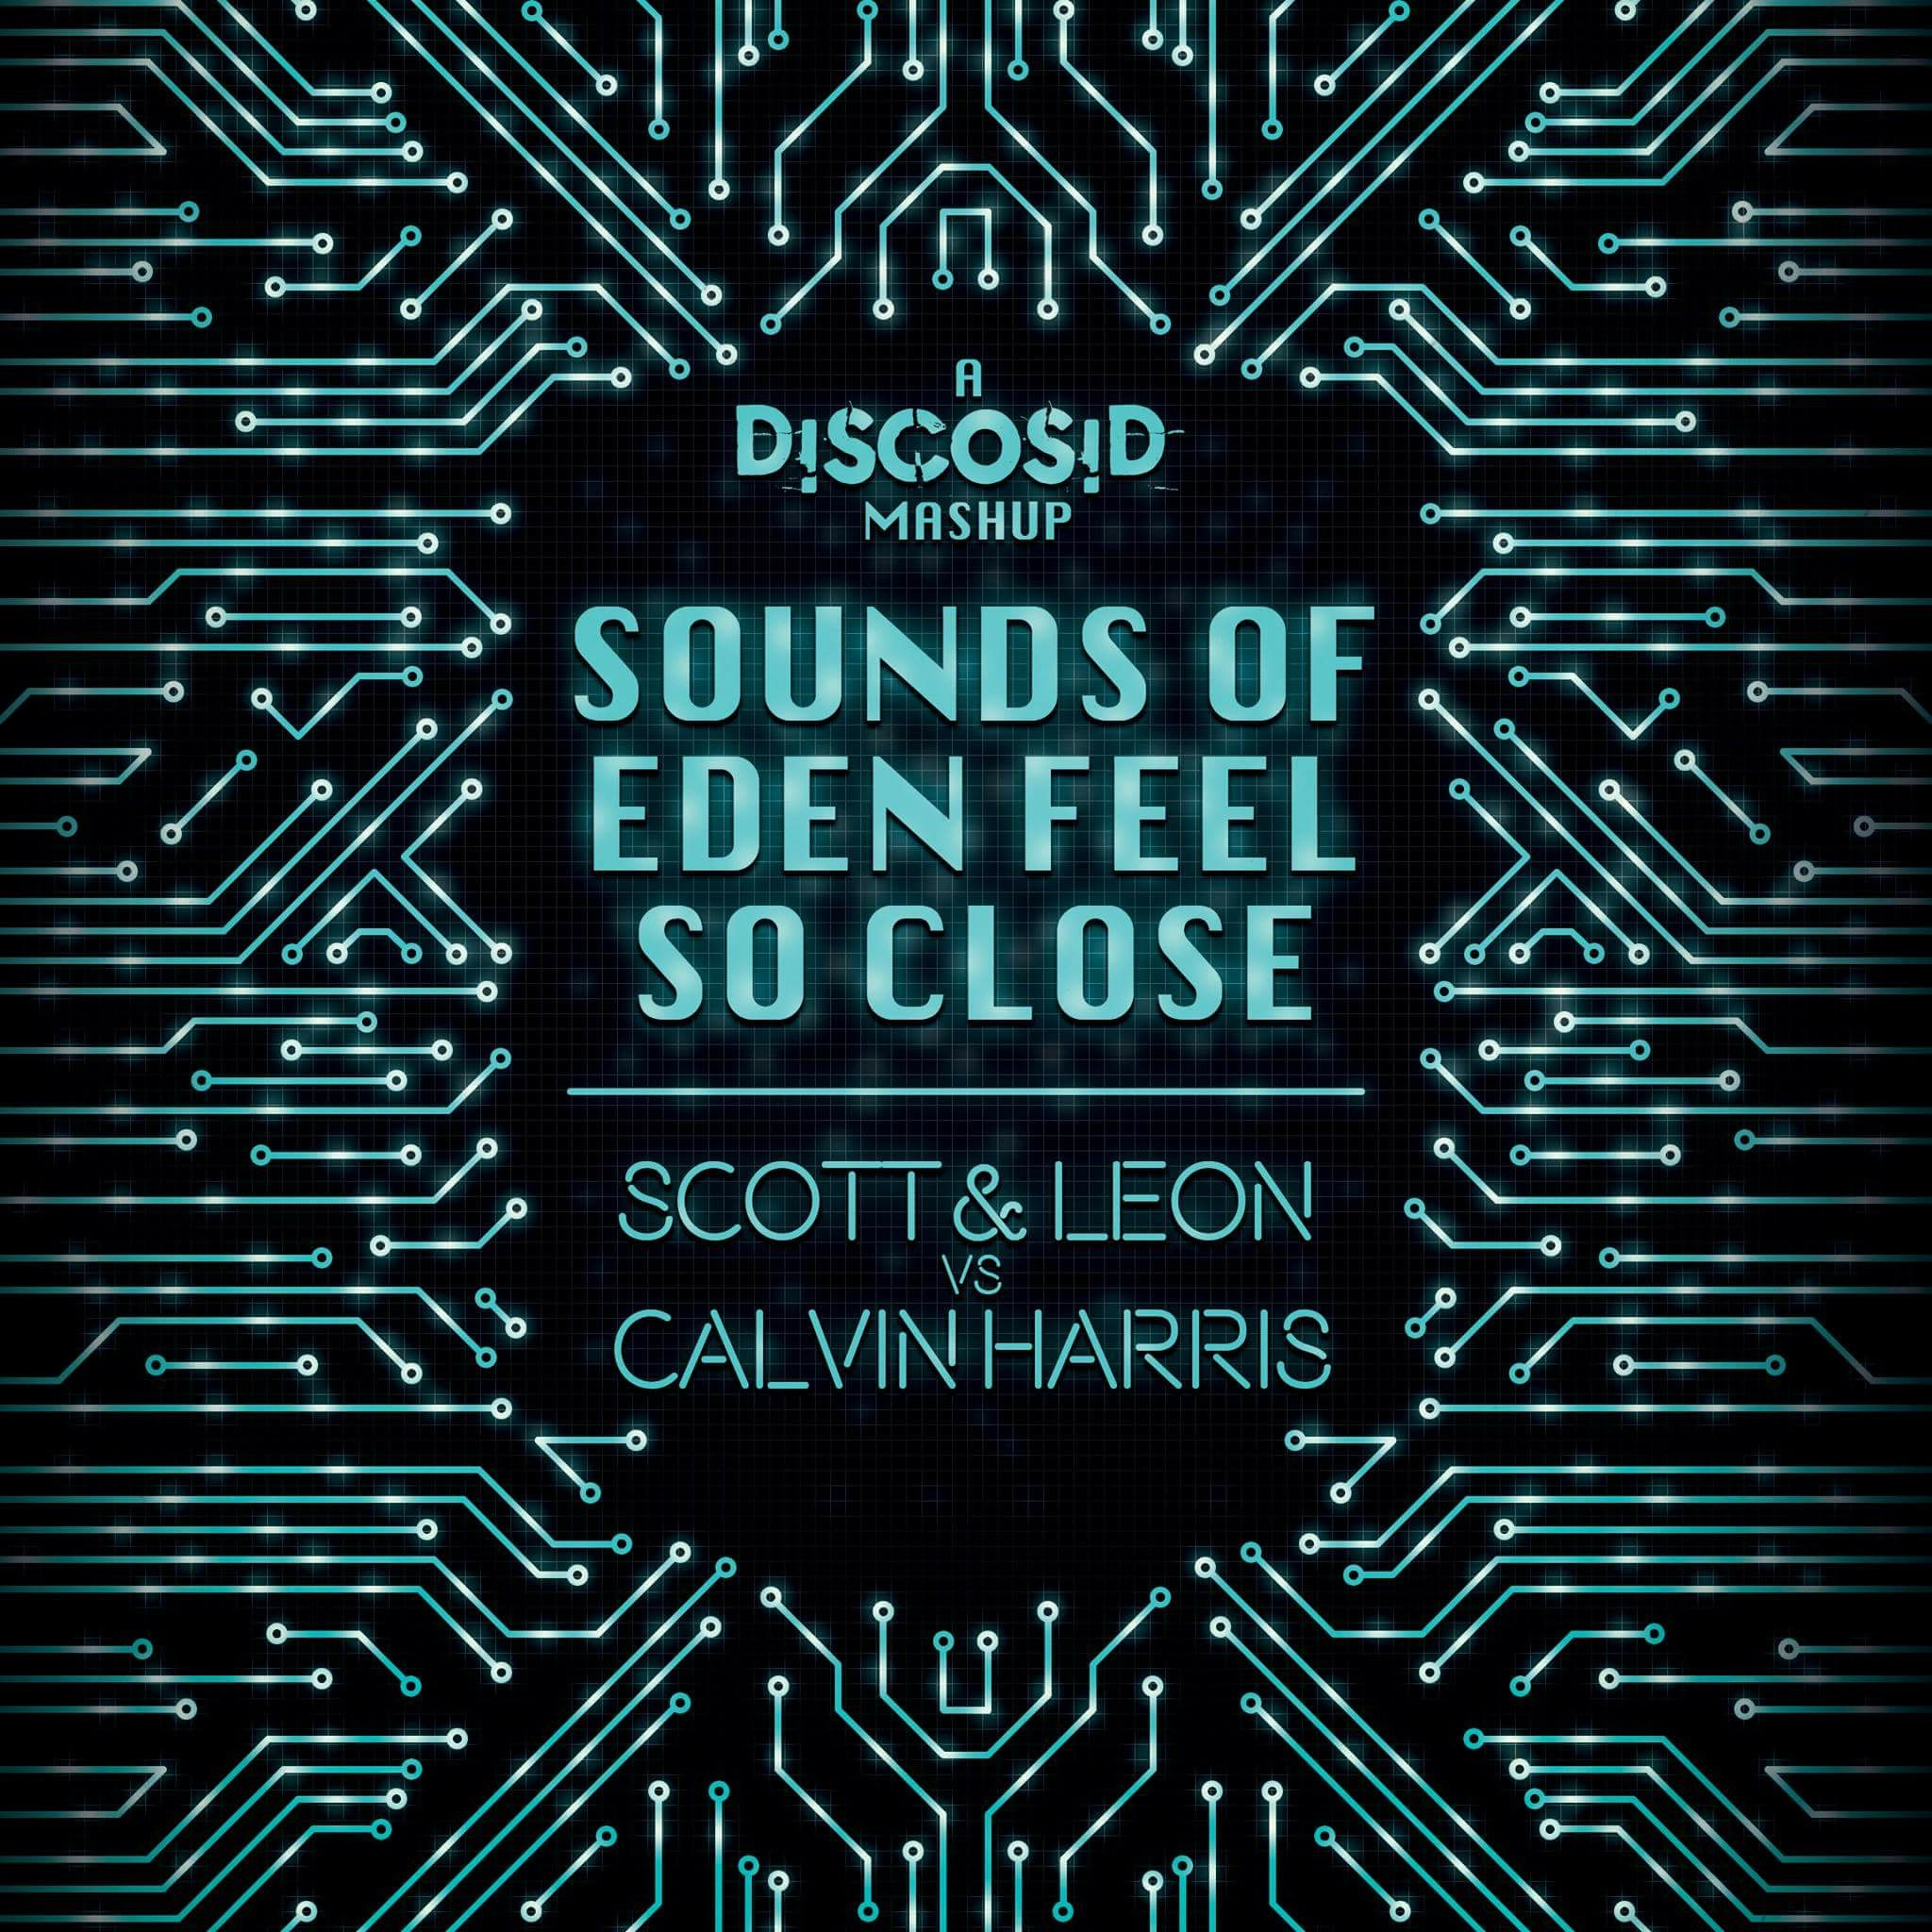 Scott & Leon Vs Calvin Harris - Sounds Of Eden Feel So Close (Discosid Mashup)